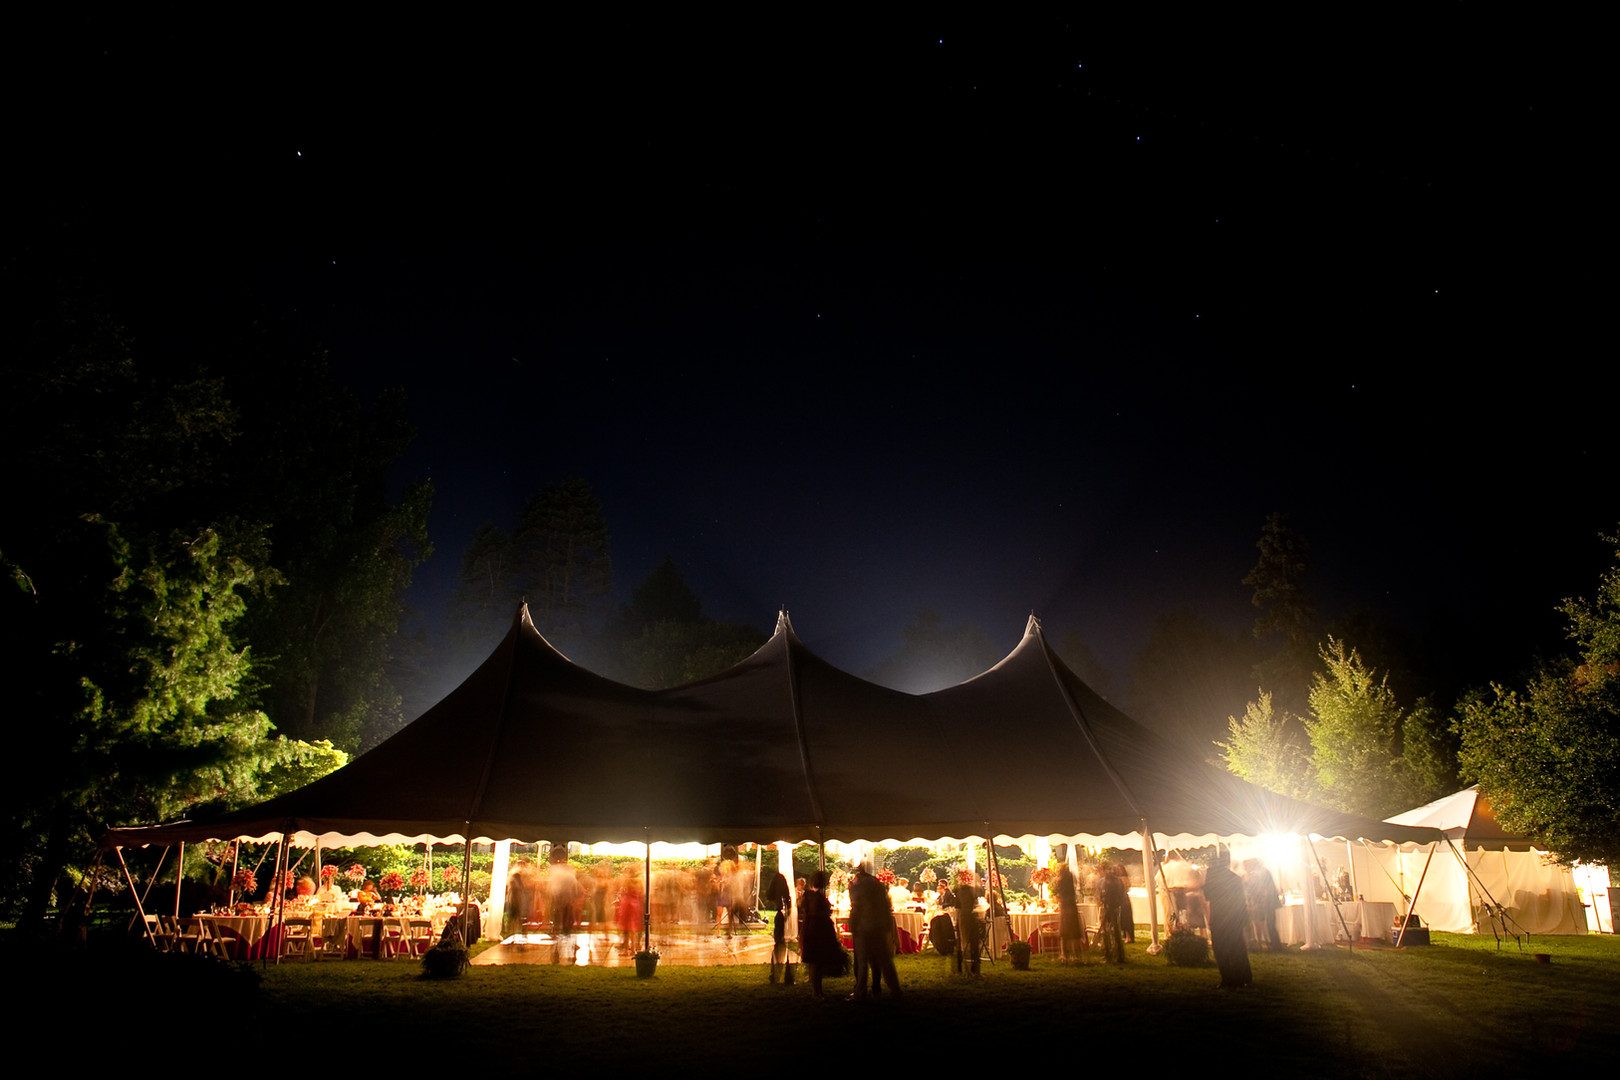 Tent outside at night